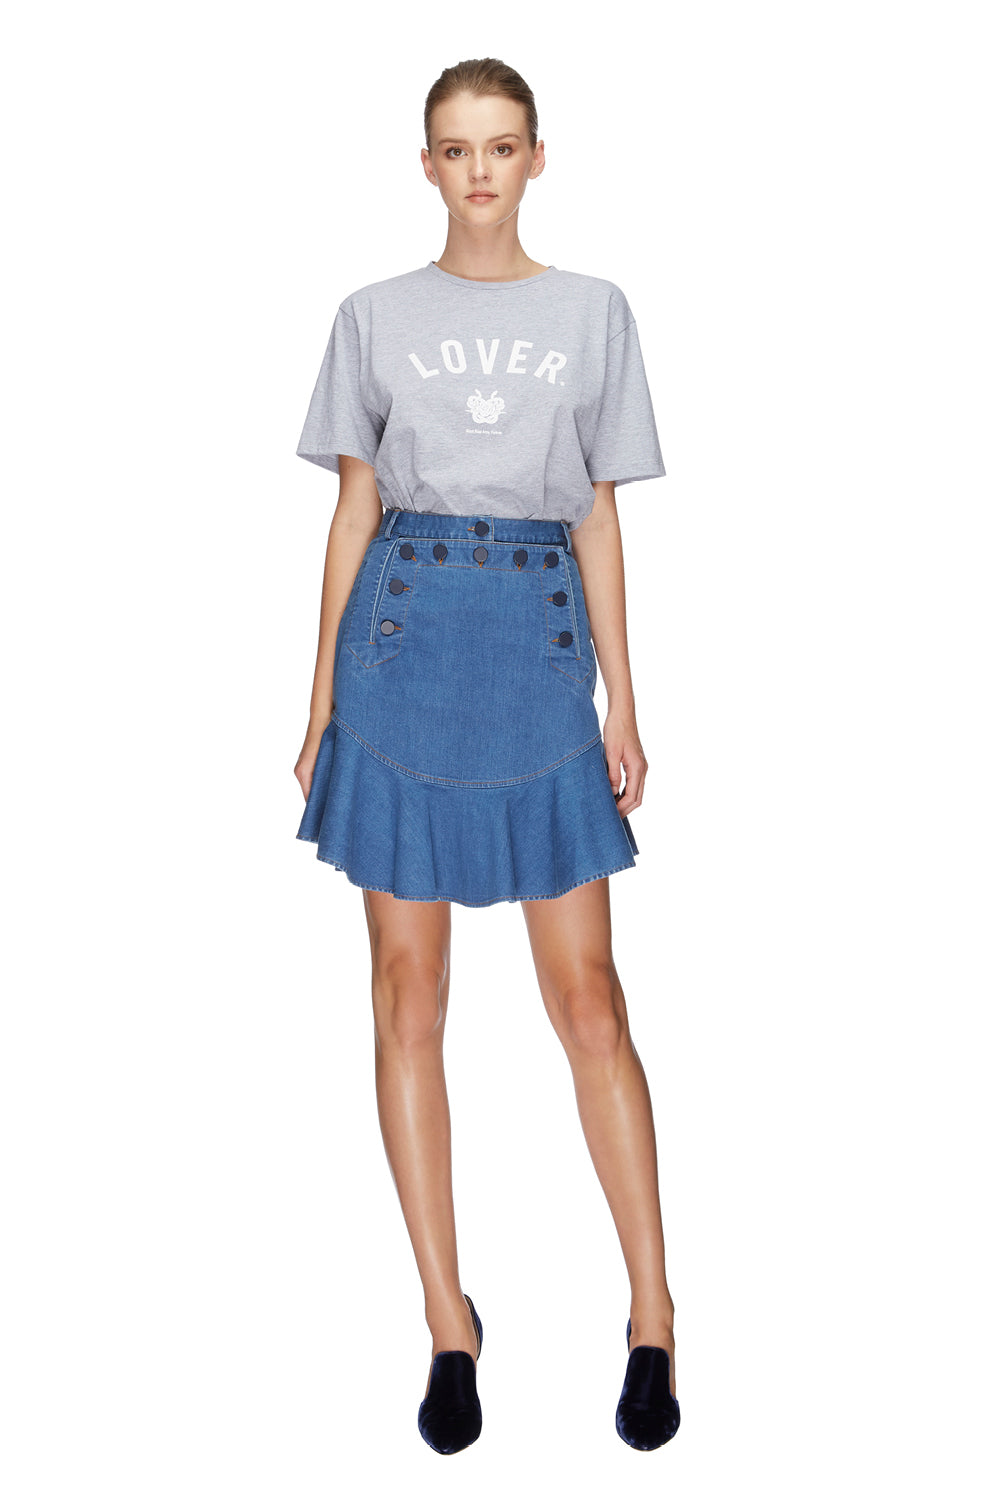 Lover College Tee Grey 2